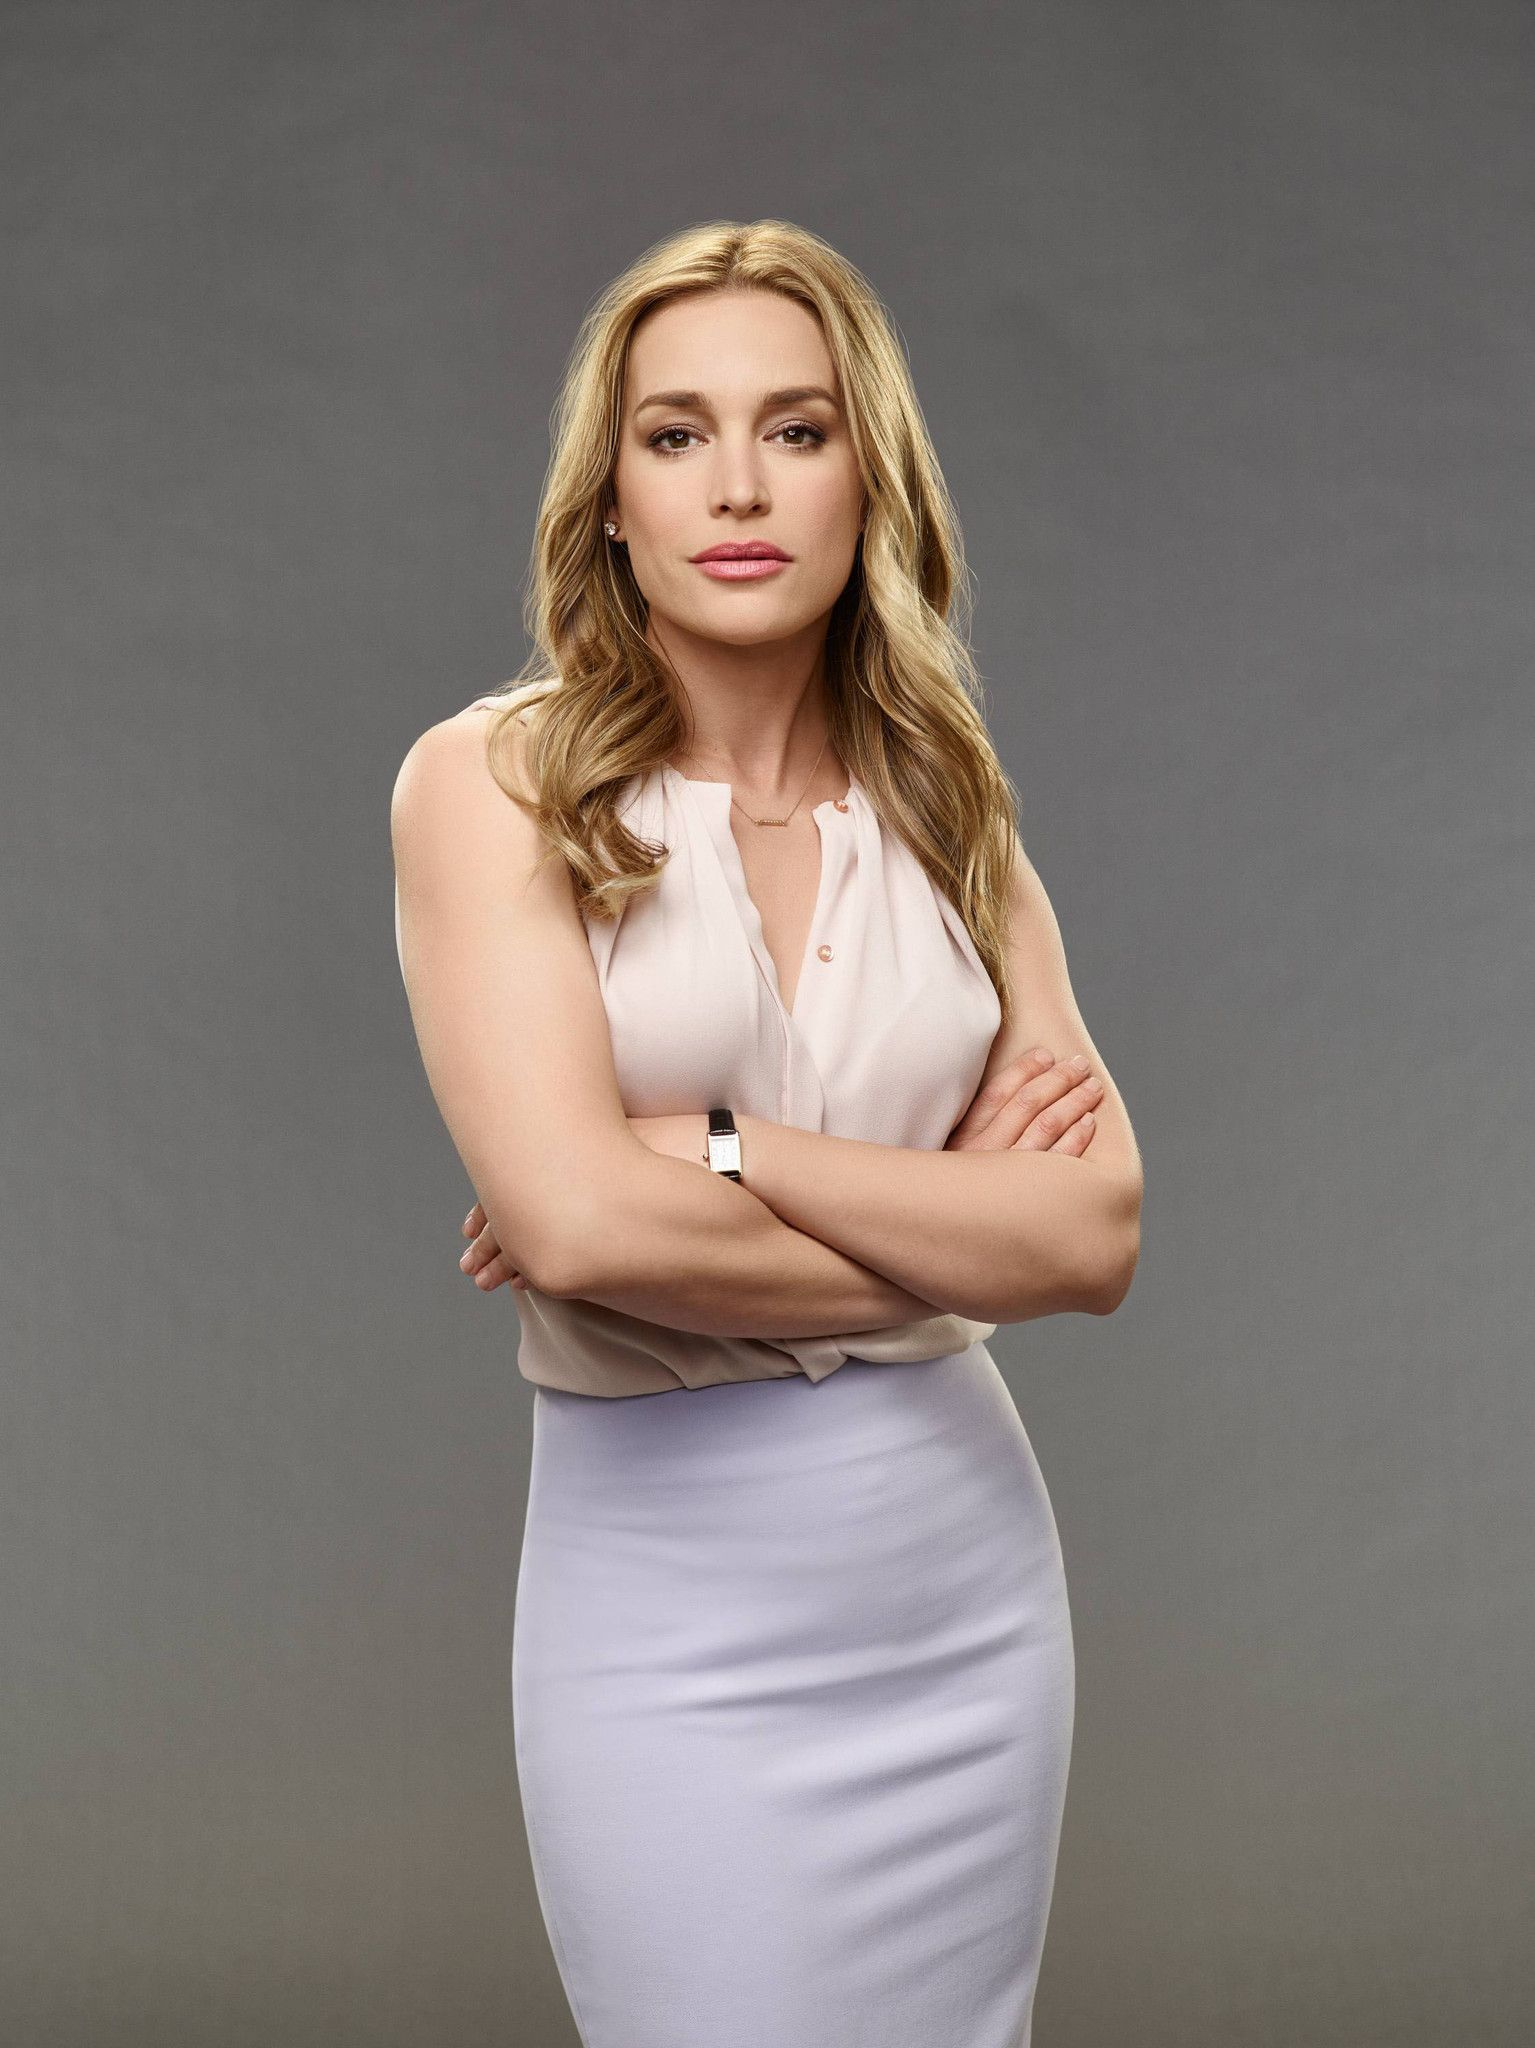 Piper Perabo Piper Perabo new foto